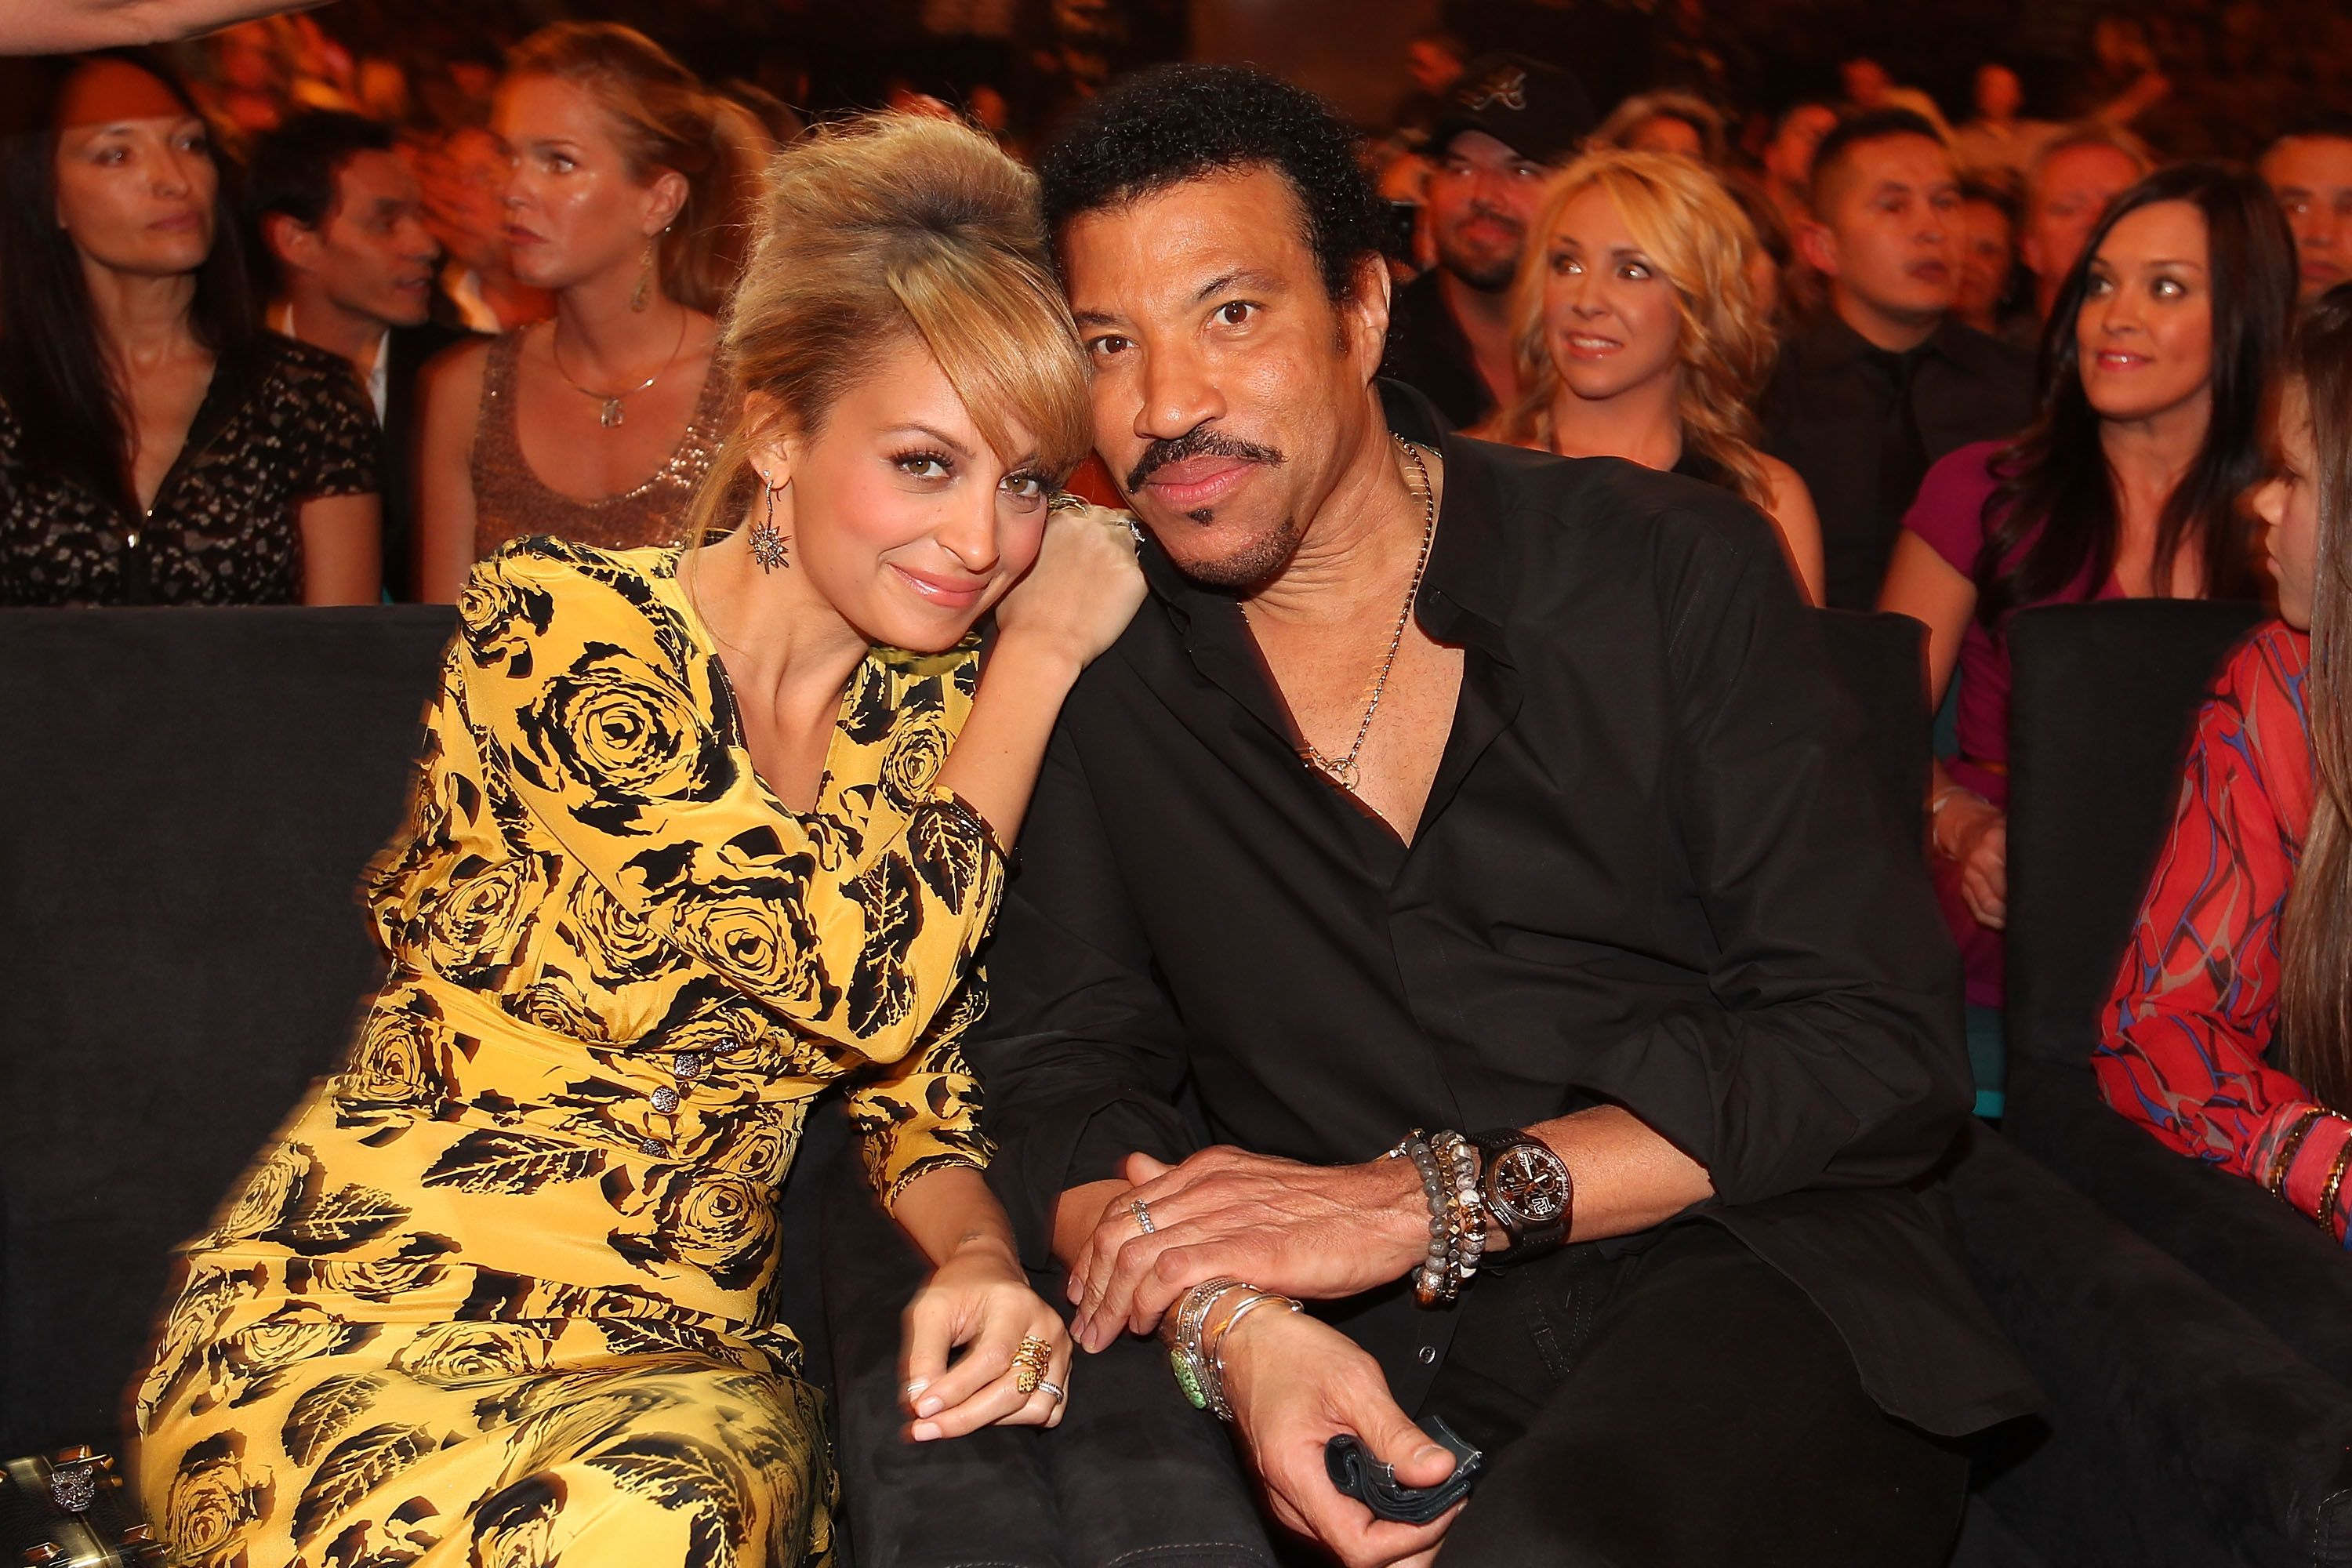 Lionel Richie's Marriages, Kids, and Relationship with Lisa Parigi